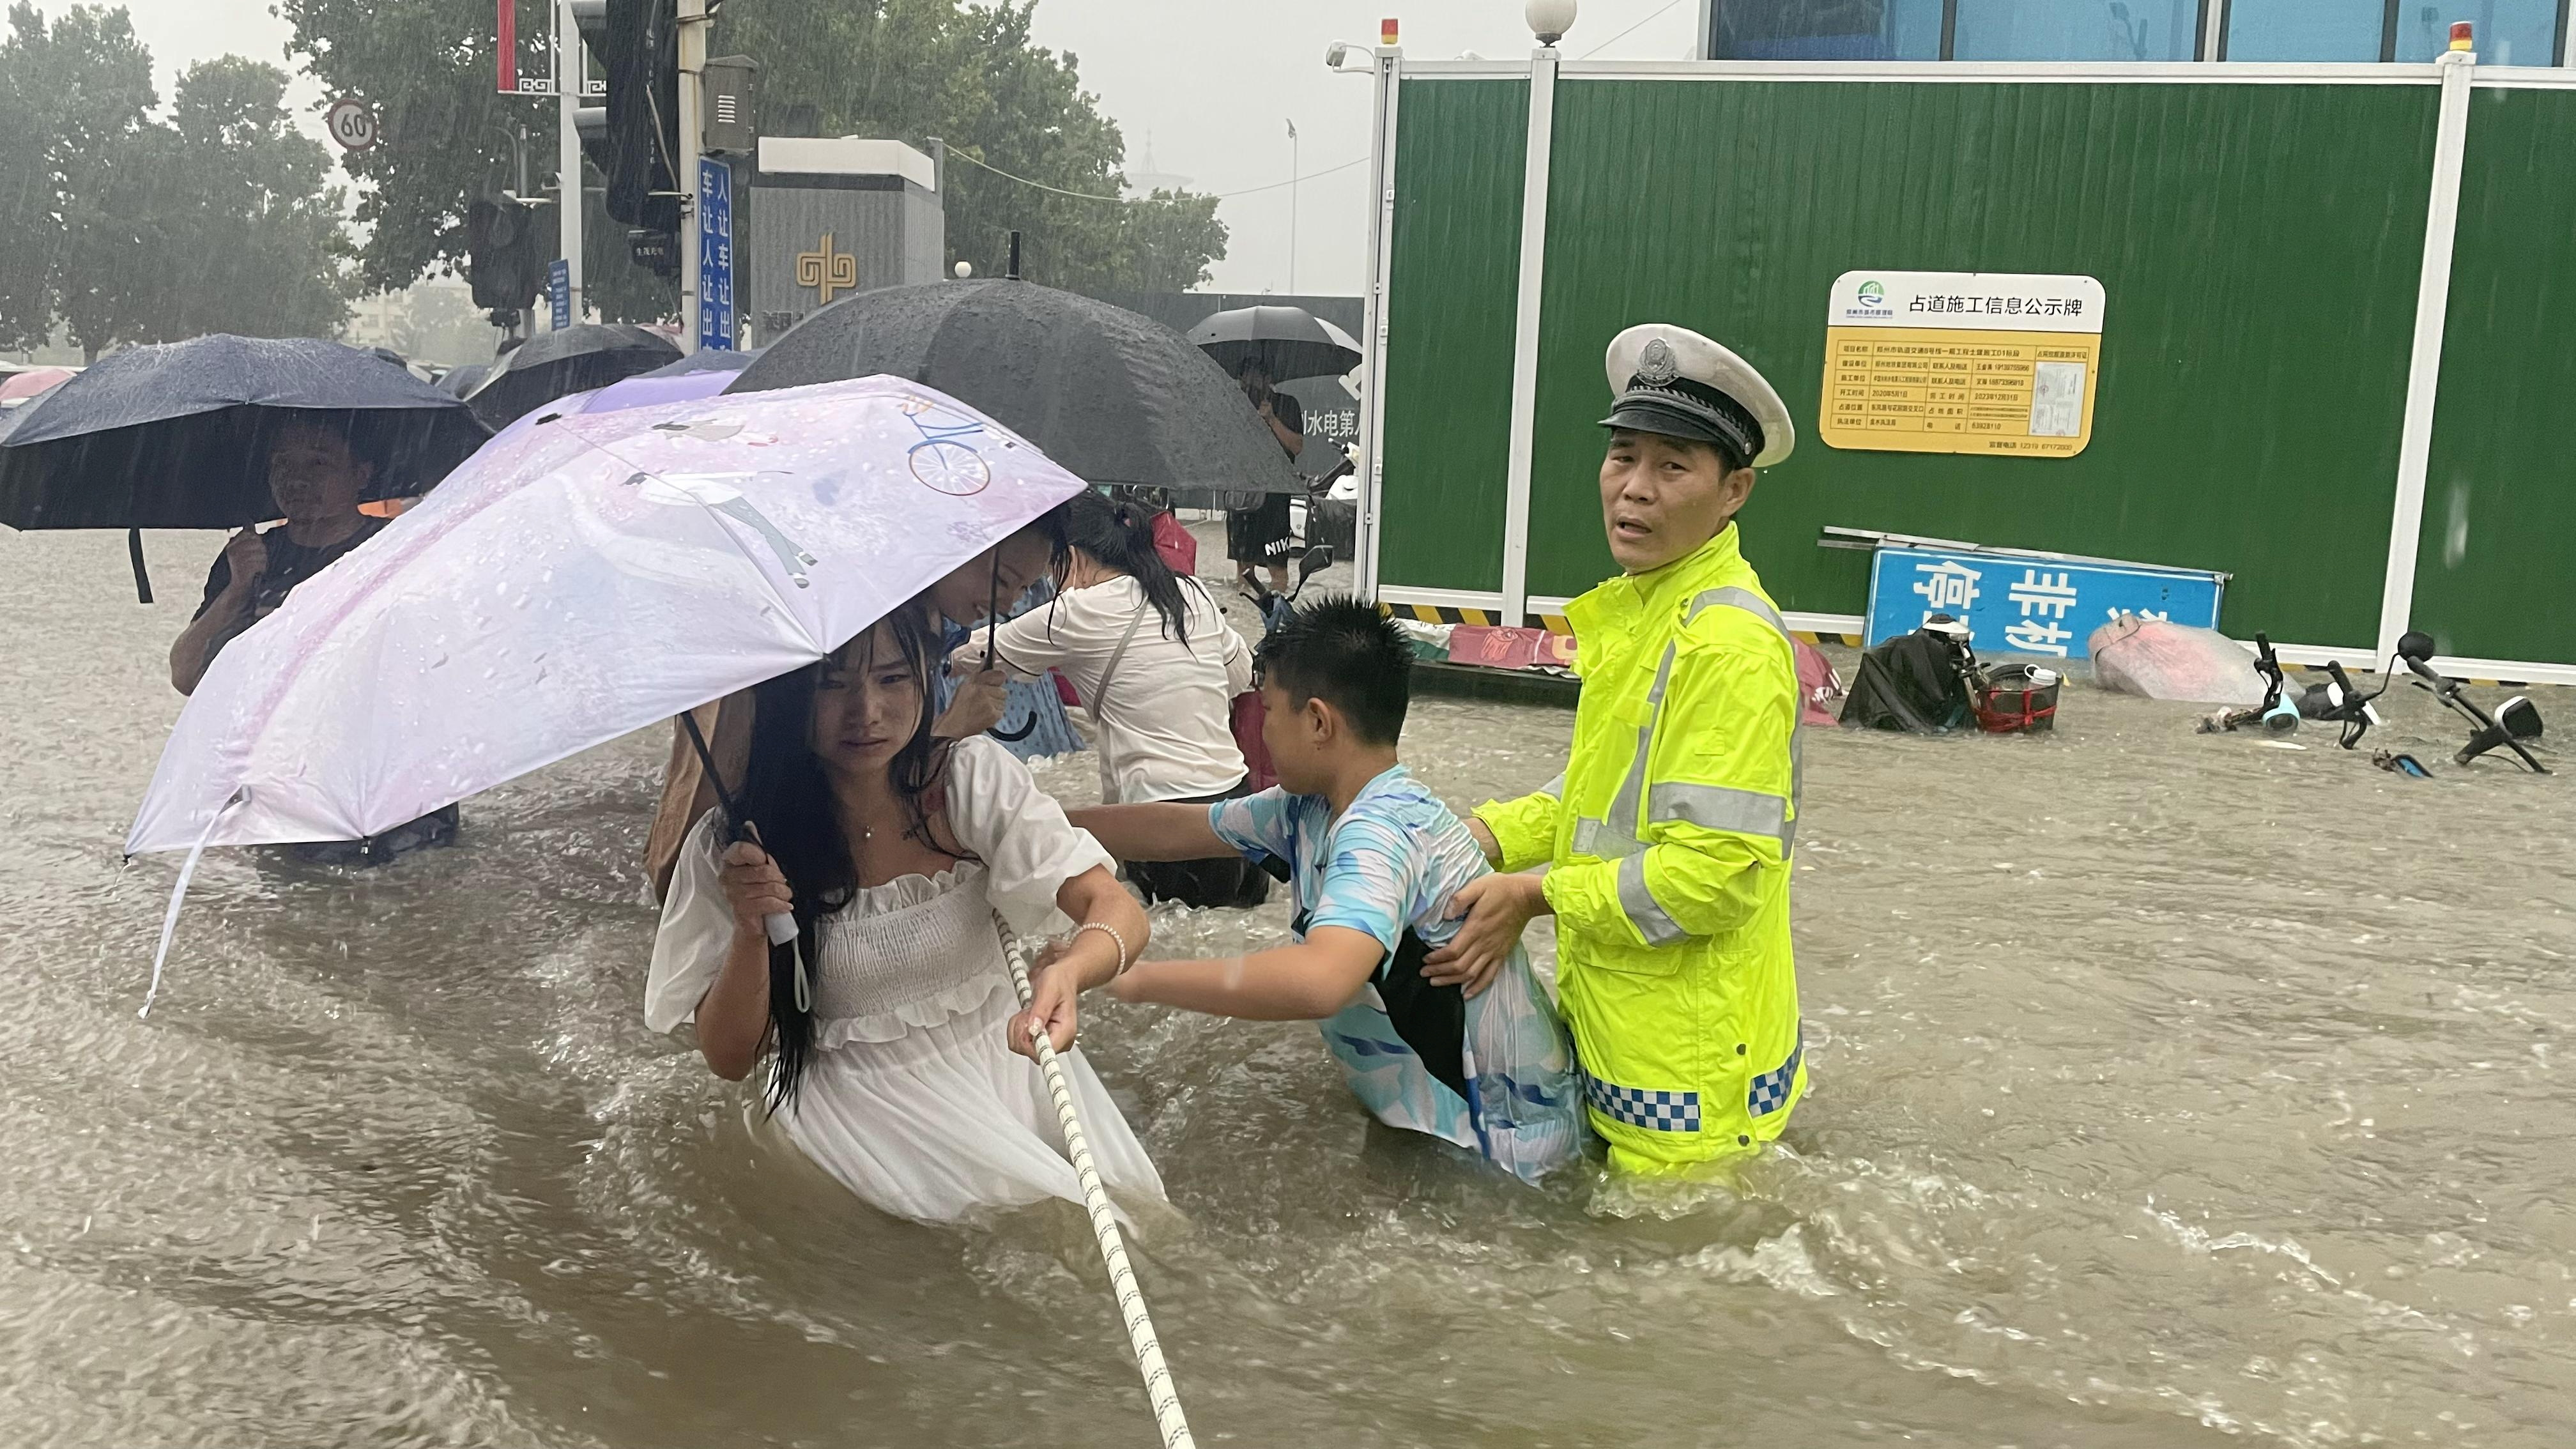 A traffic police officer guides residents to cross a flooded road with a rope during heavy rainfall in Zhengzhou, Henan province, China July 20, 2021. China Daily via REUTERS